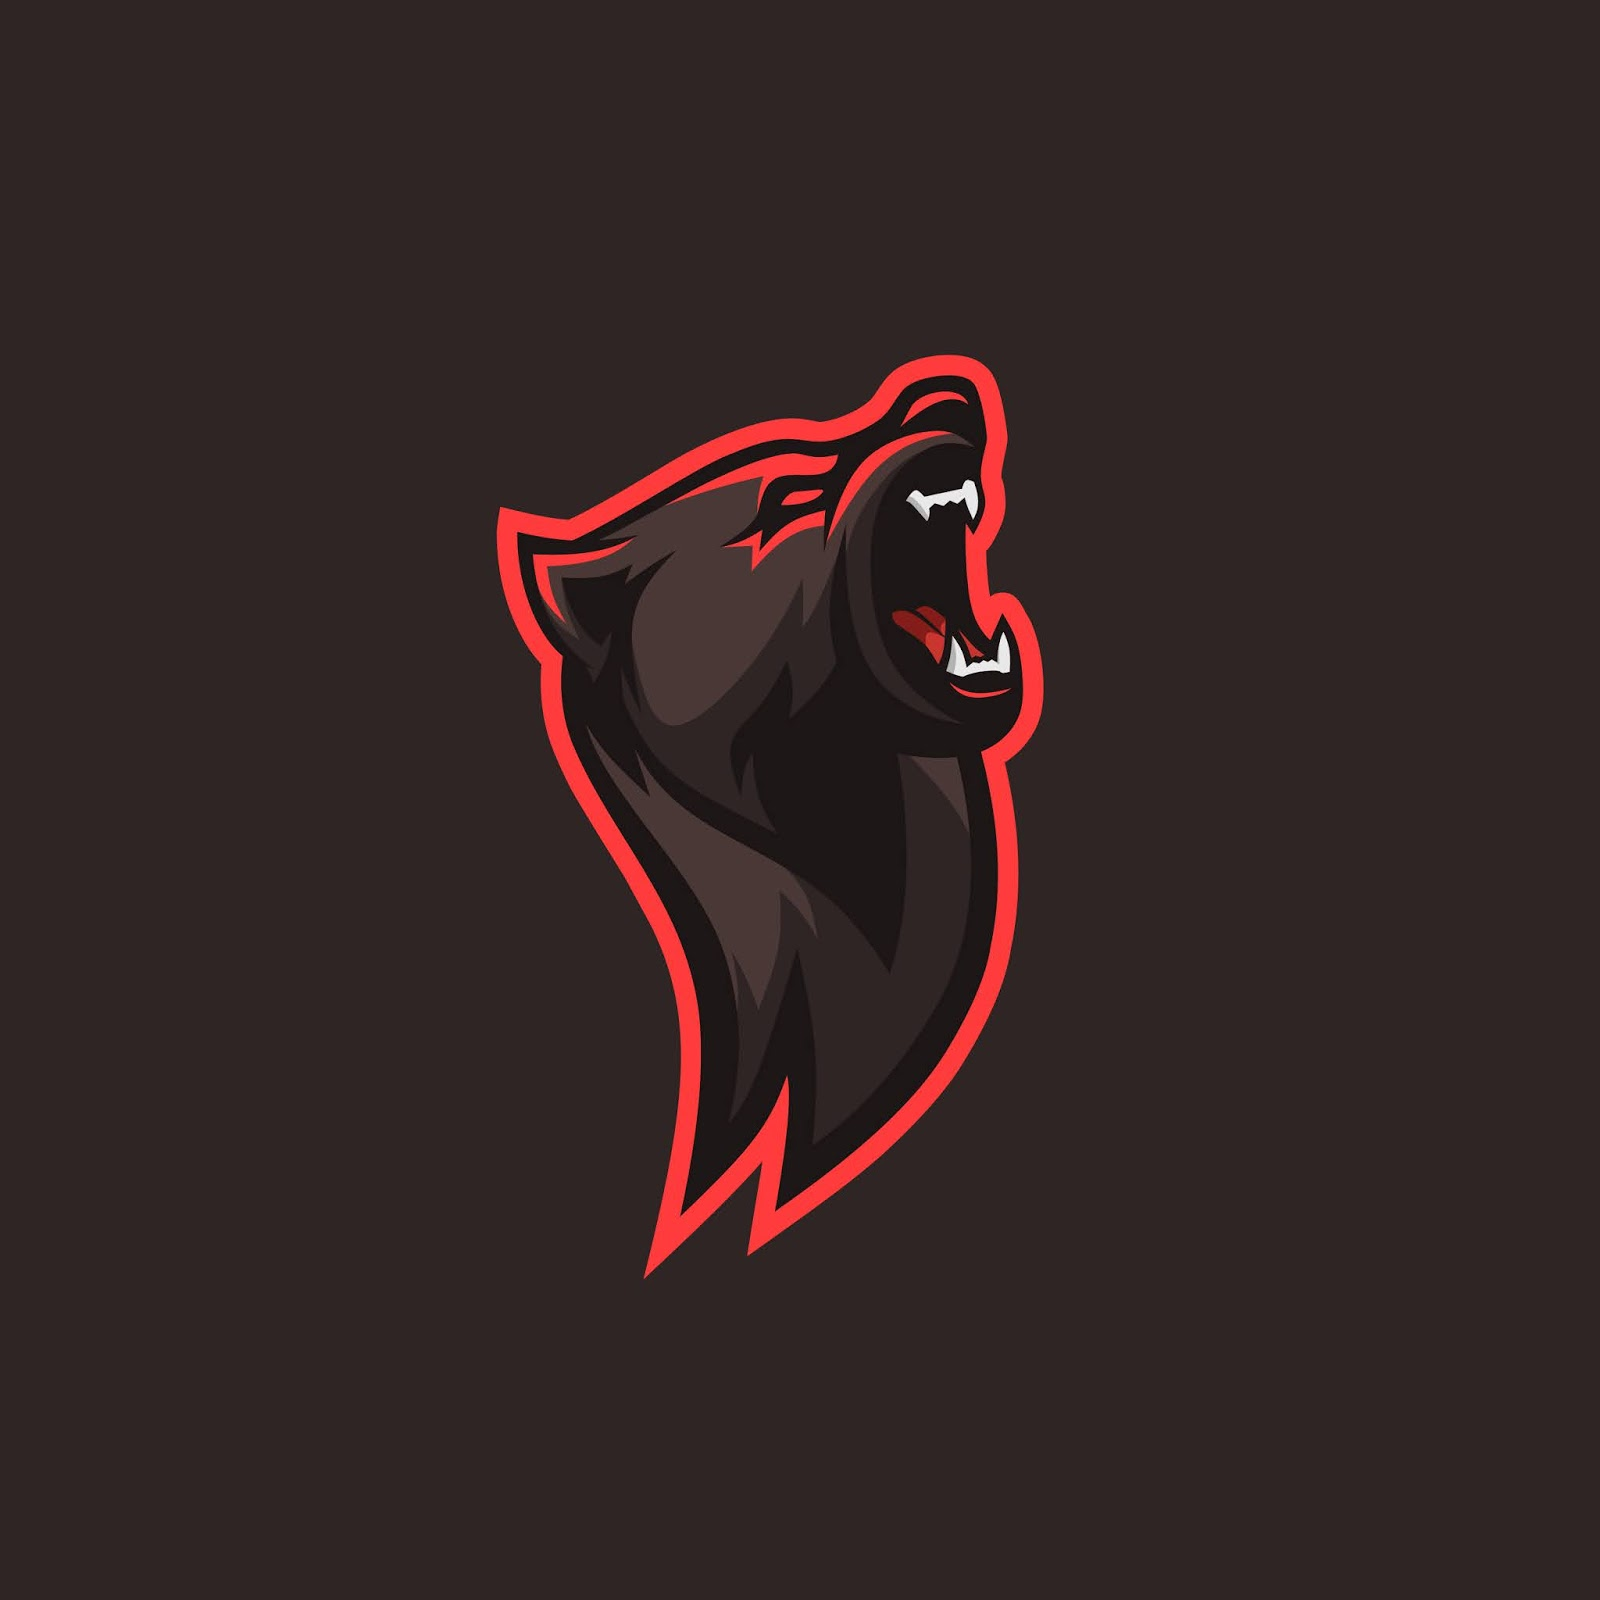 Bear Illlustration Logo Gaming Squad Free Download Vector CDR, AI, EPS and PNG Formats